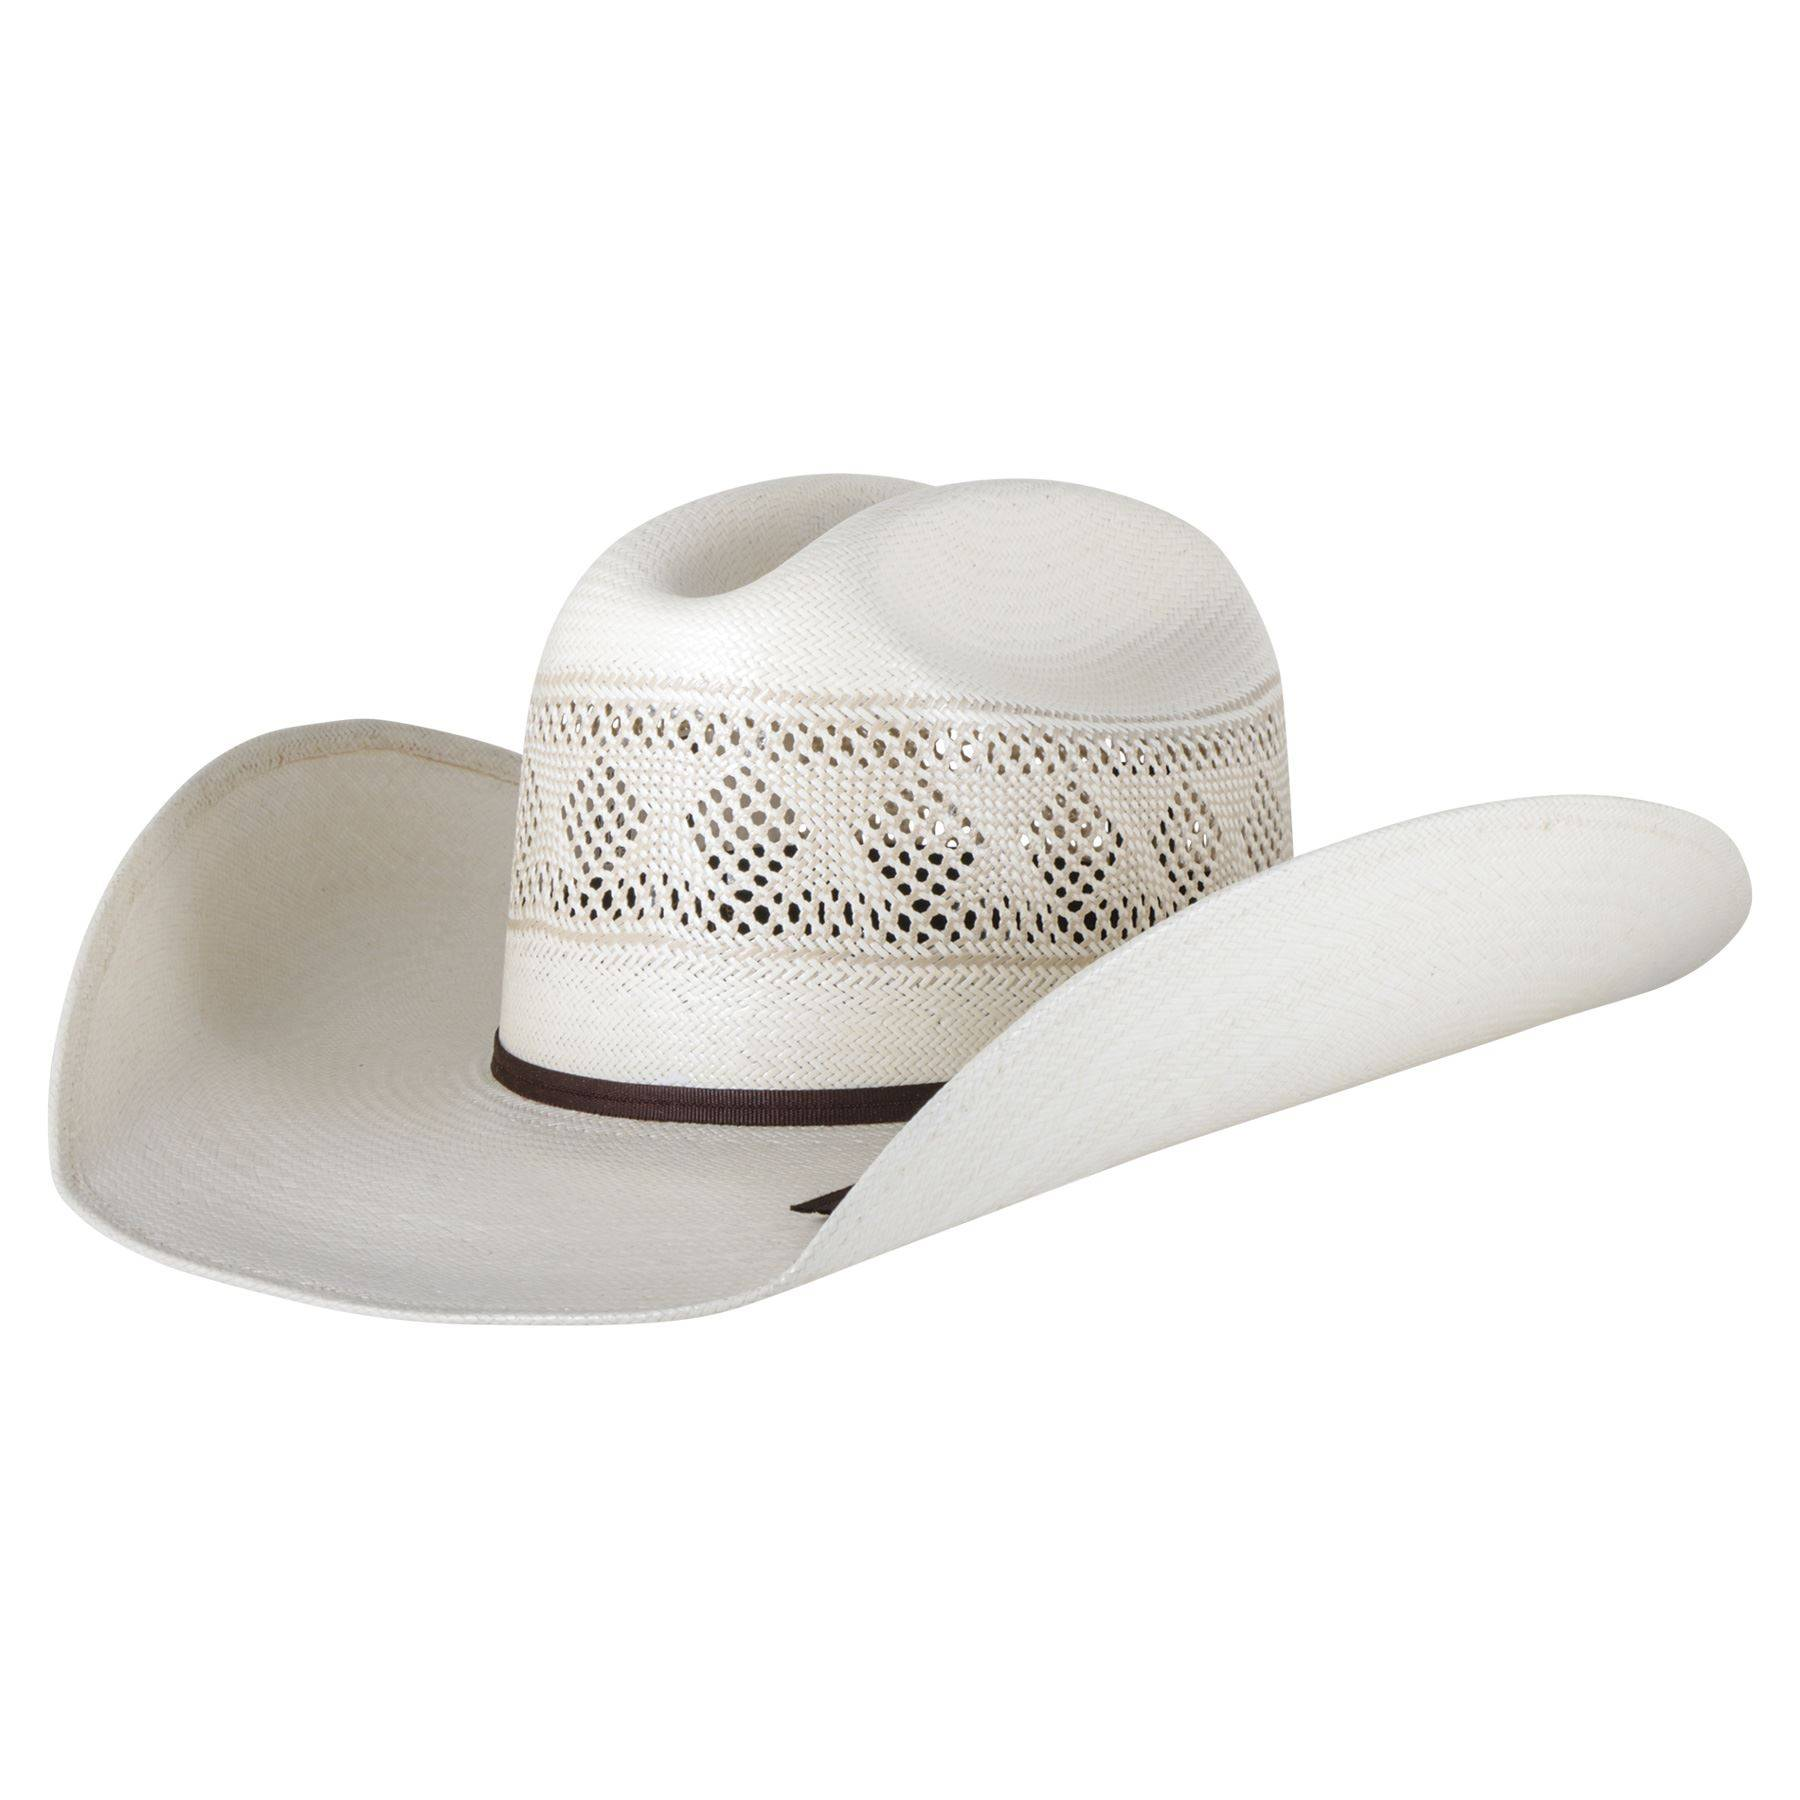 Rodeo King All Around Straw Cowboy Hat in Apparel Boots at Schneider ... ba8cba87952